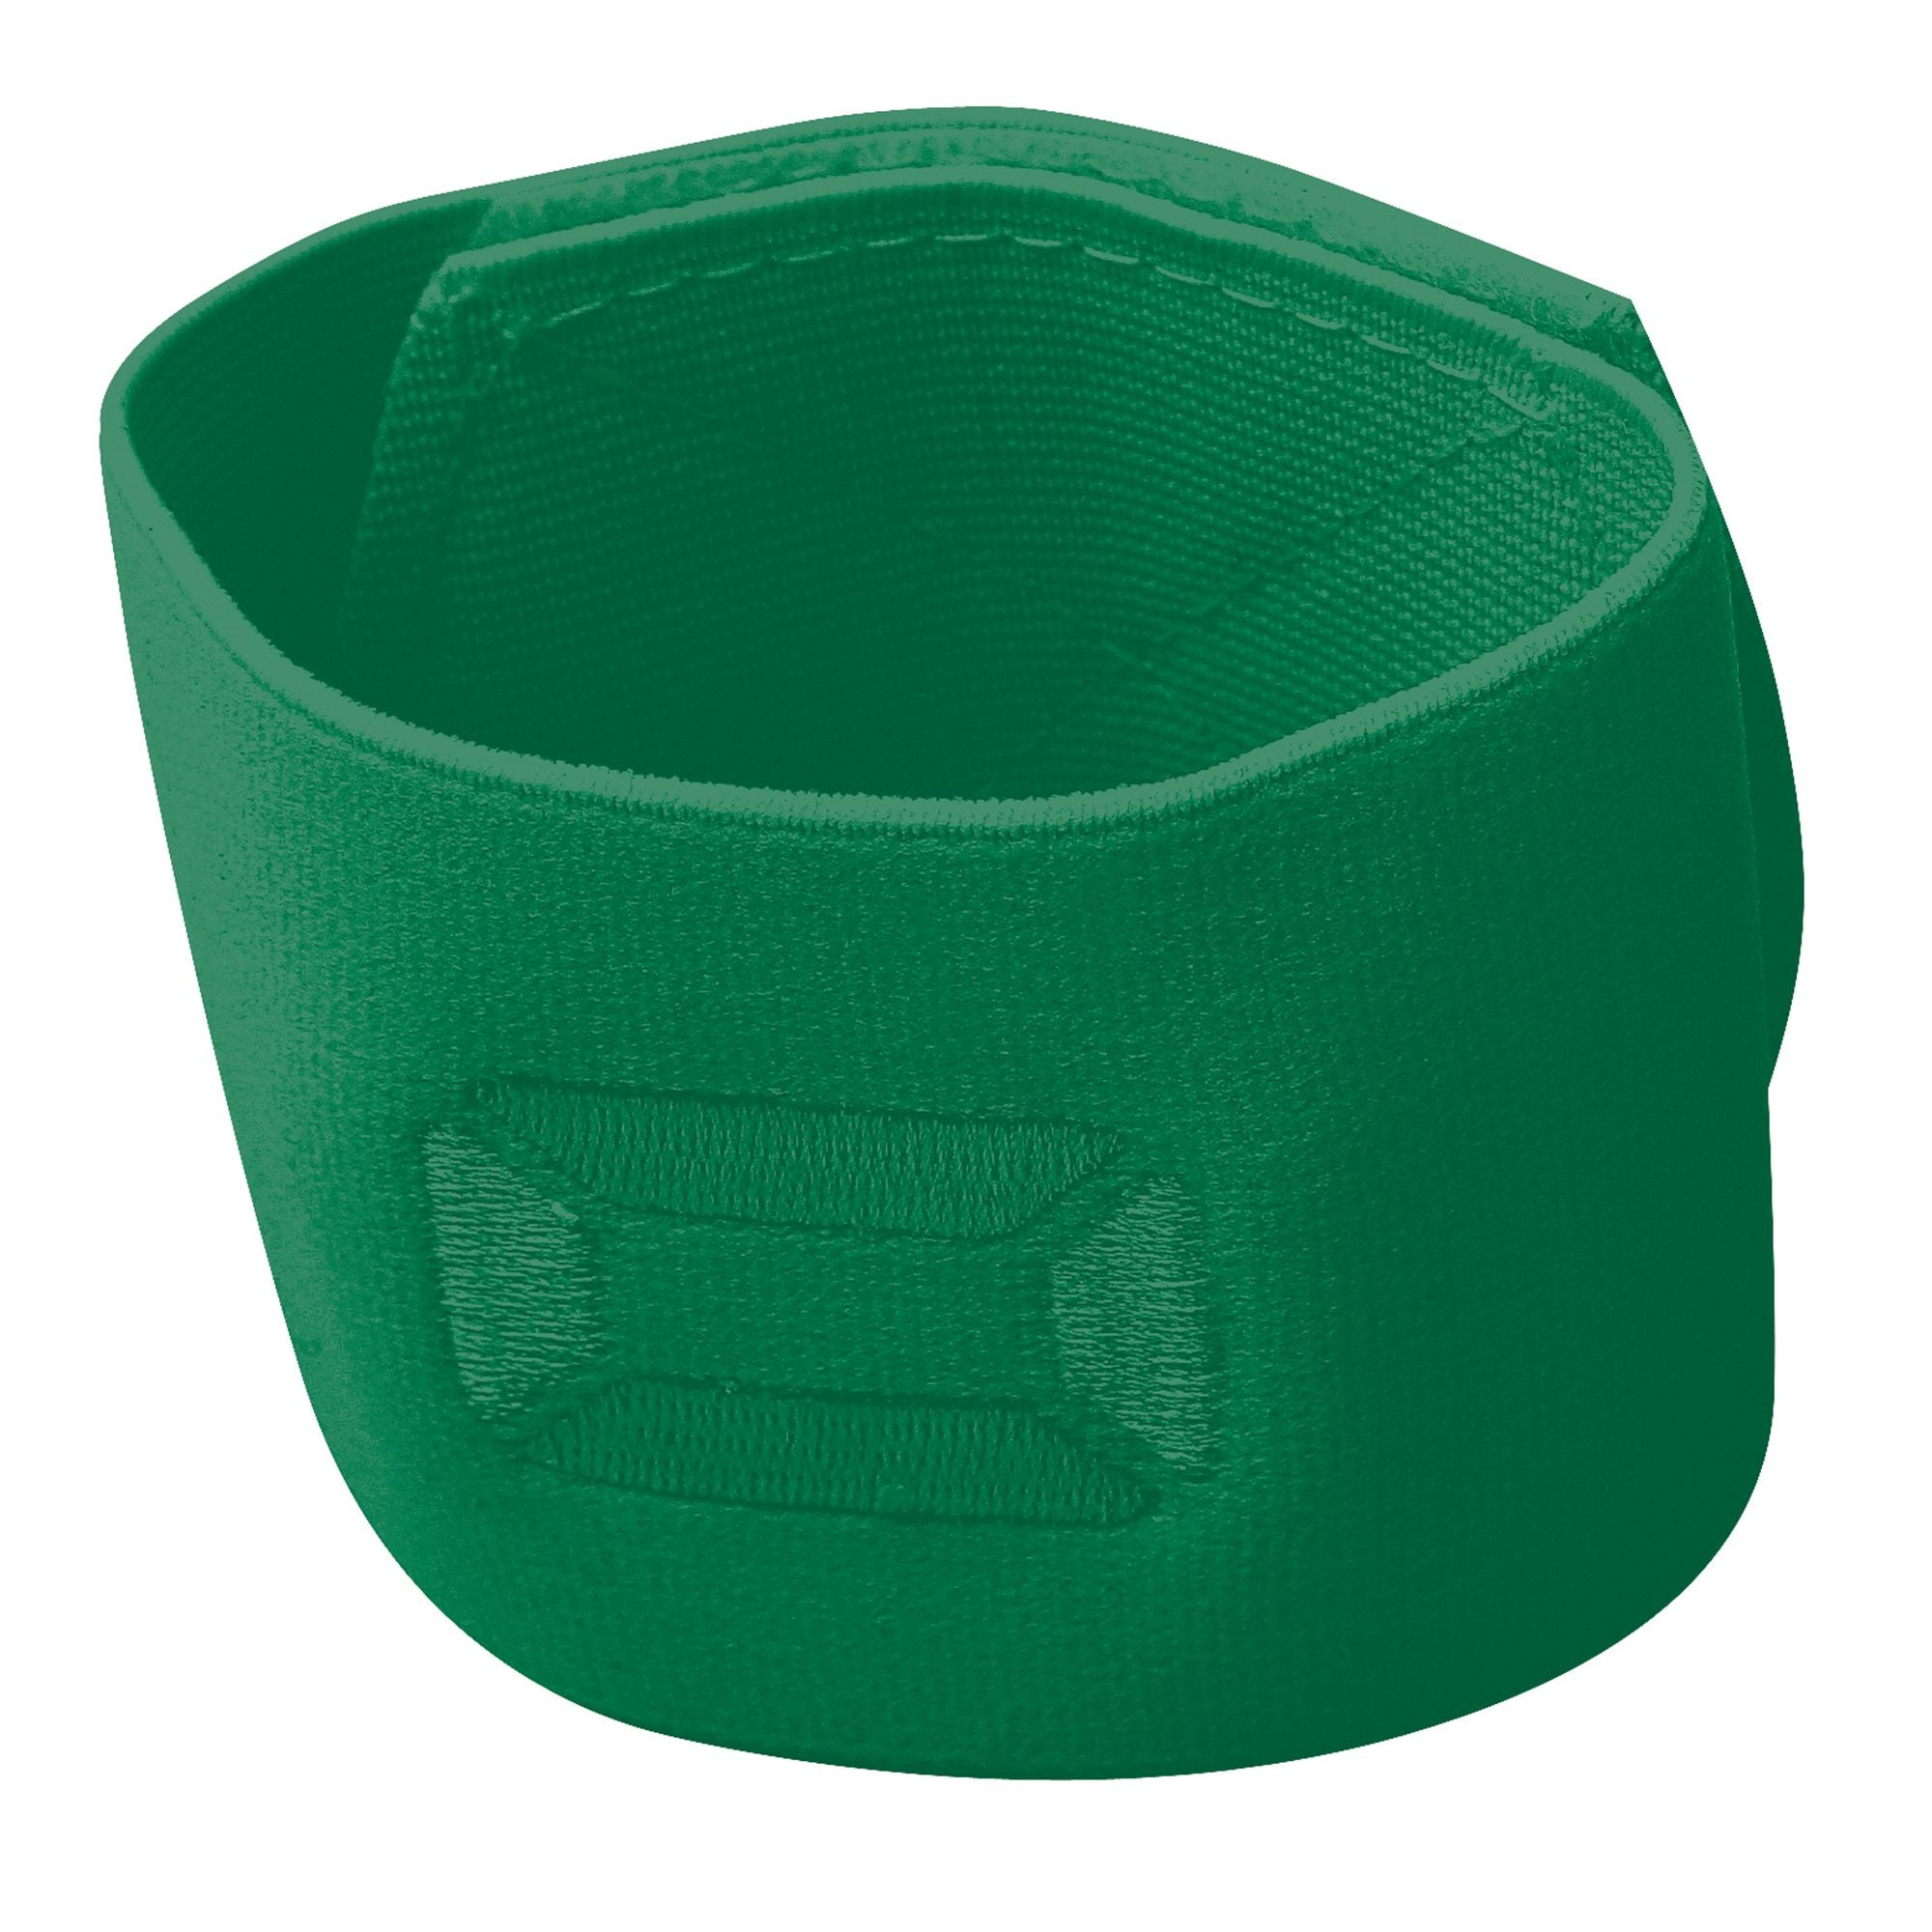 Stanno Guard Stay in green with same colour centralised embroidered Stanno logo